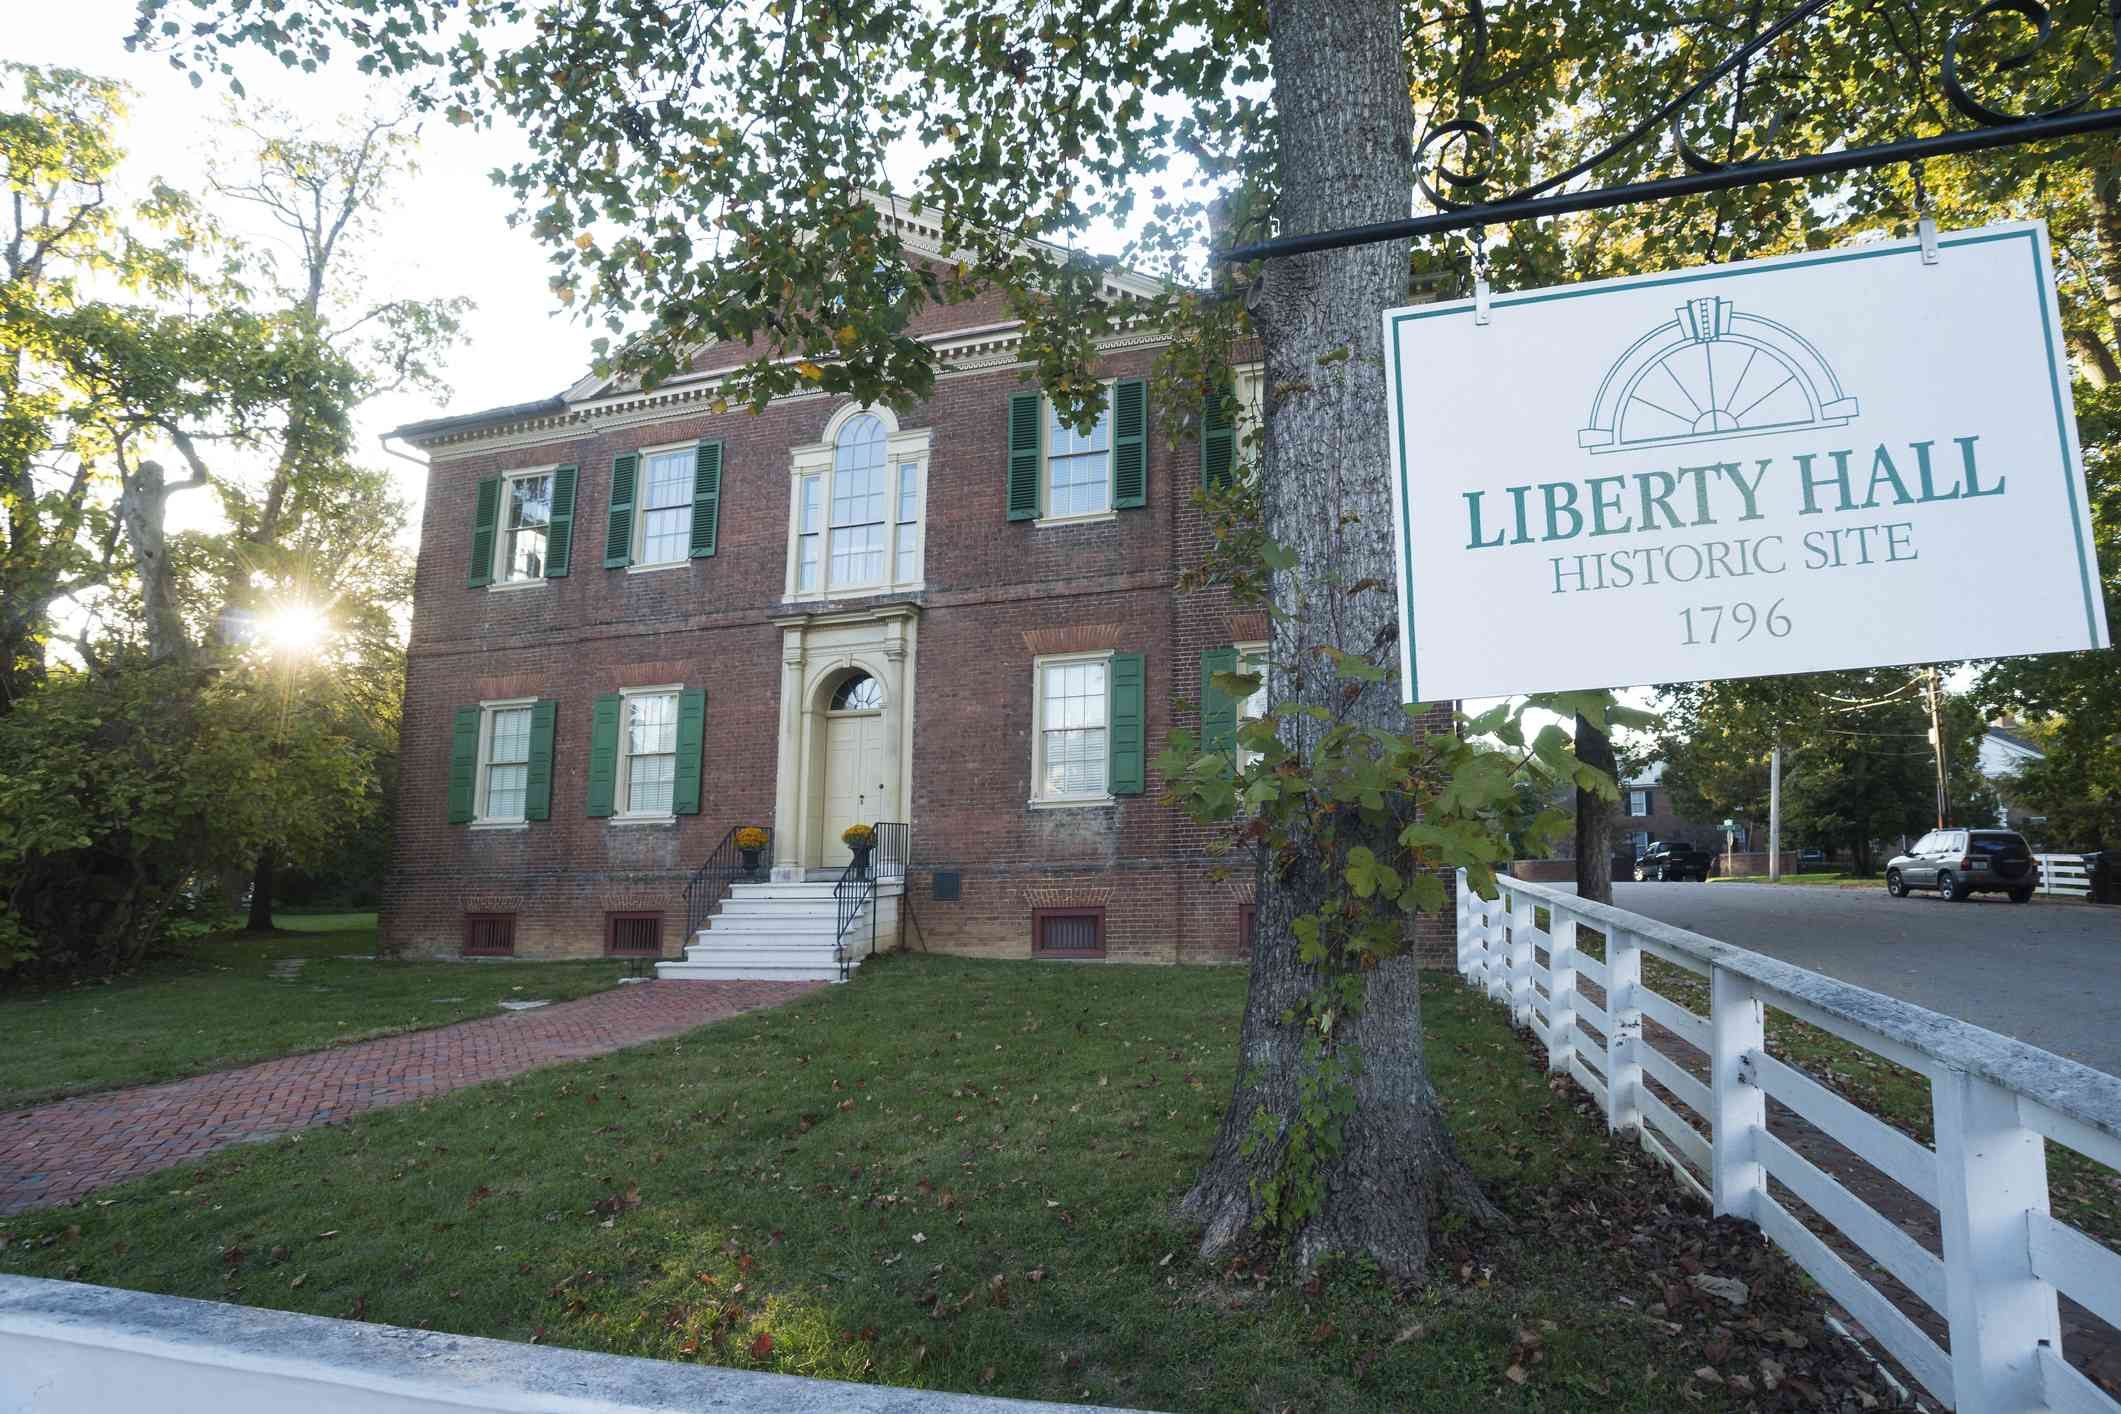 Liberty Hall tourist site in Frankfort, KY